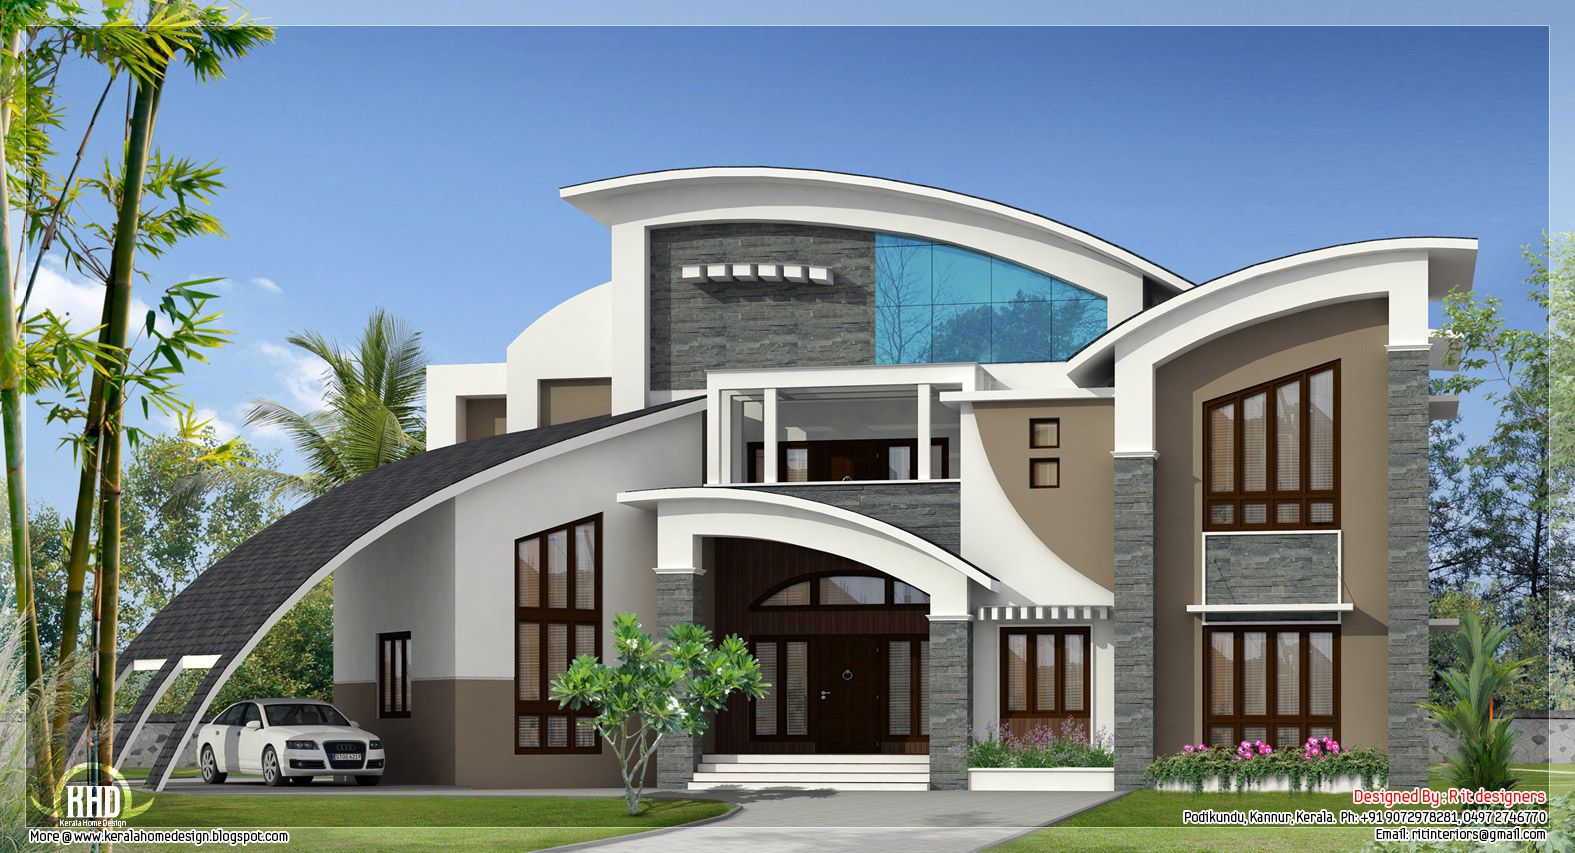 House Desings Cool Unique Super Luxury Kerala Villa  Kerala Home Design And Floor Decorating Design